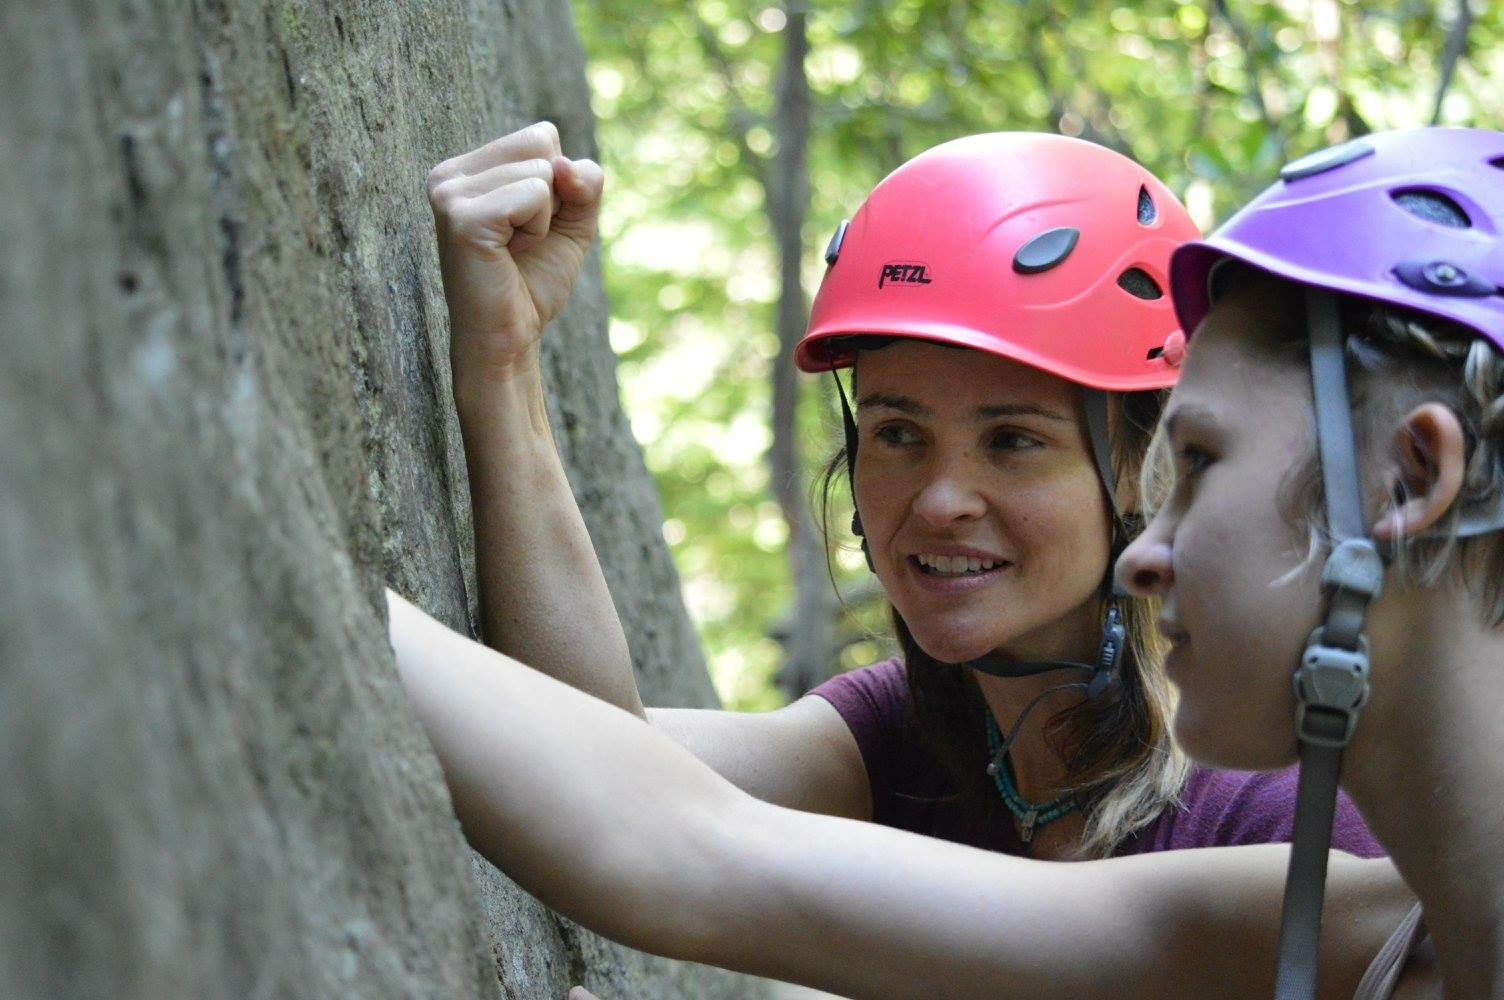 Elaina Arenz, co-owner Chicks Climbing and Skiing, mentors aspiring female climbers